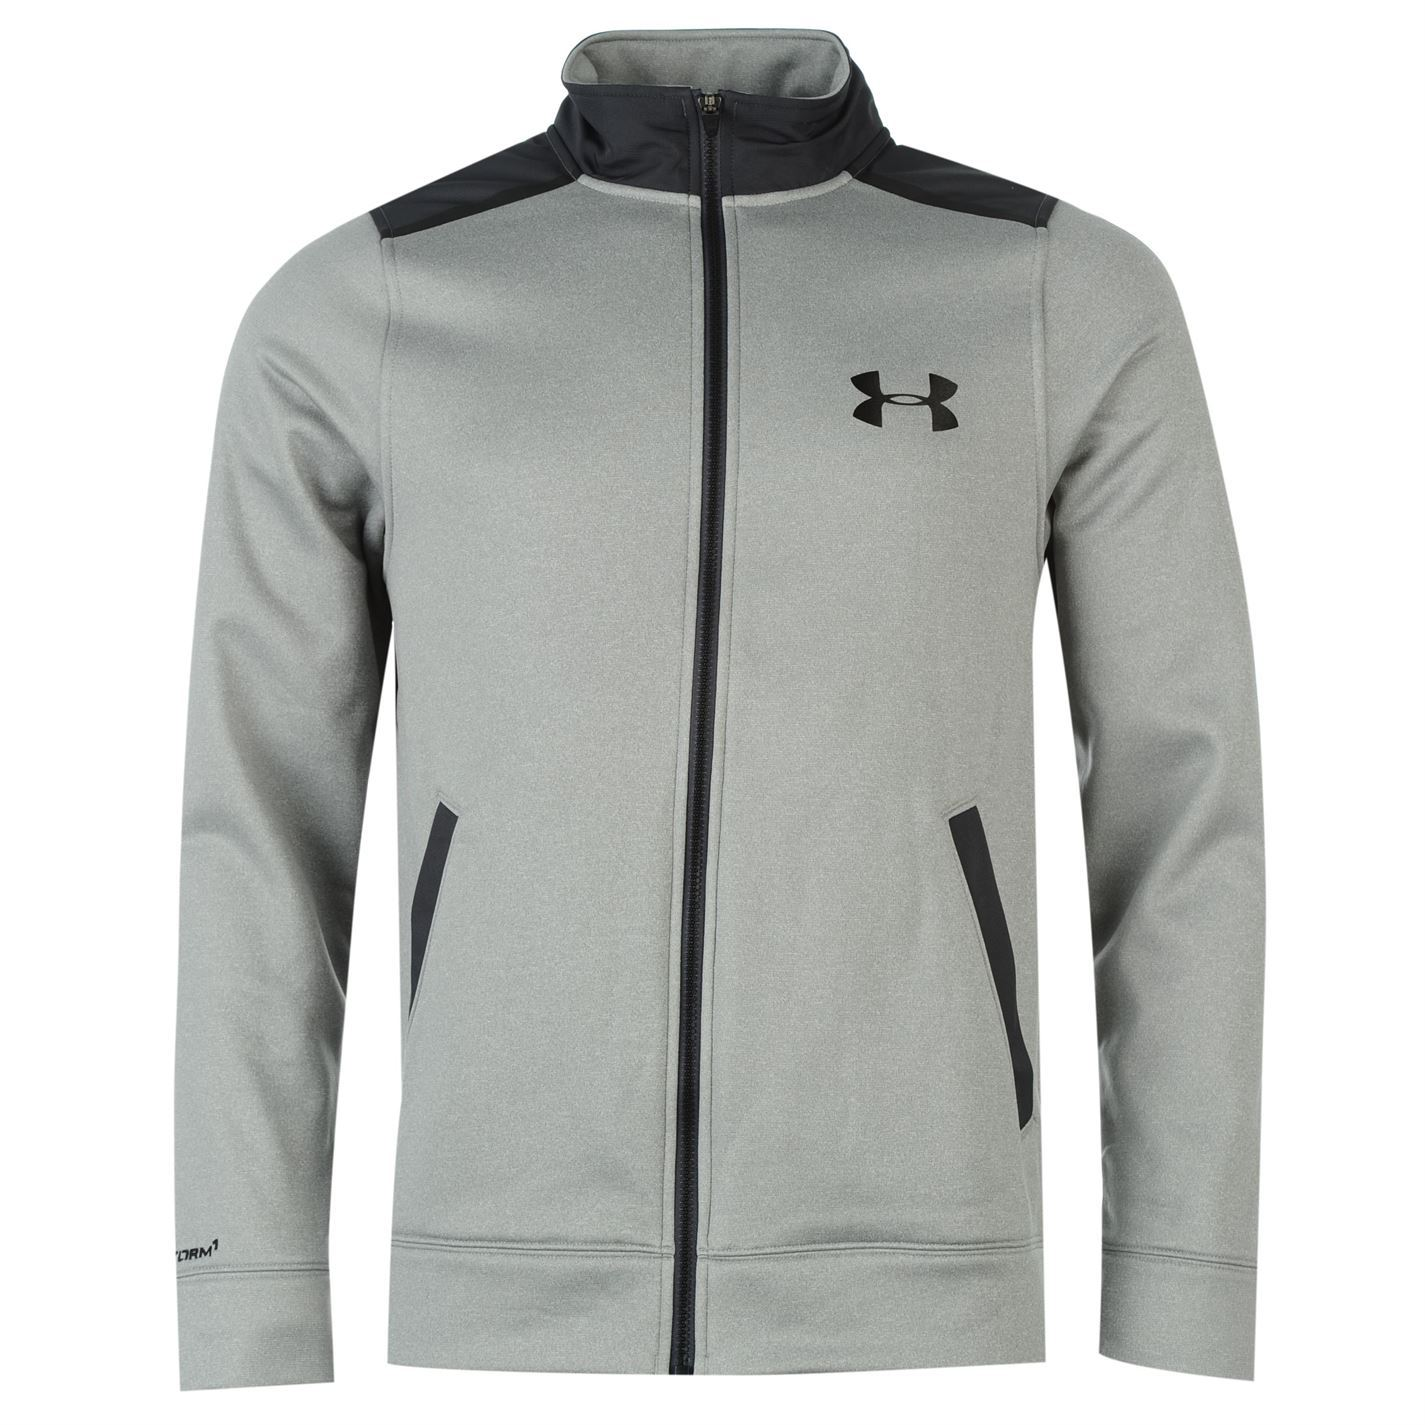 Under armour mens storm jacket long sleeve top tee shirt for Under armour long sleeve t shirts women